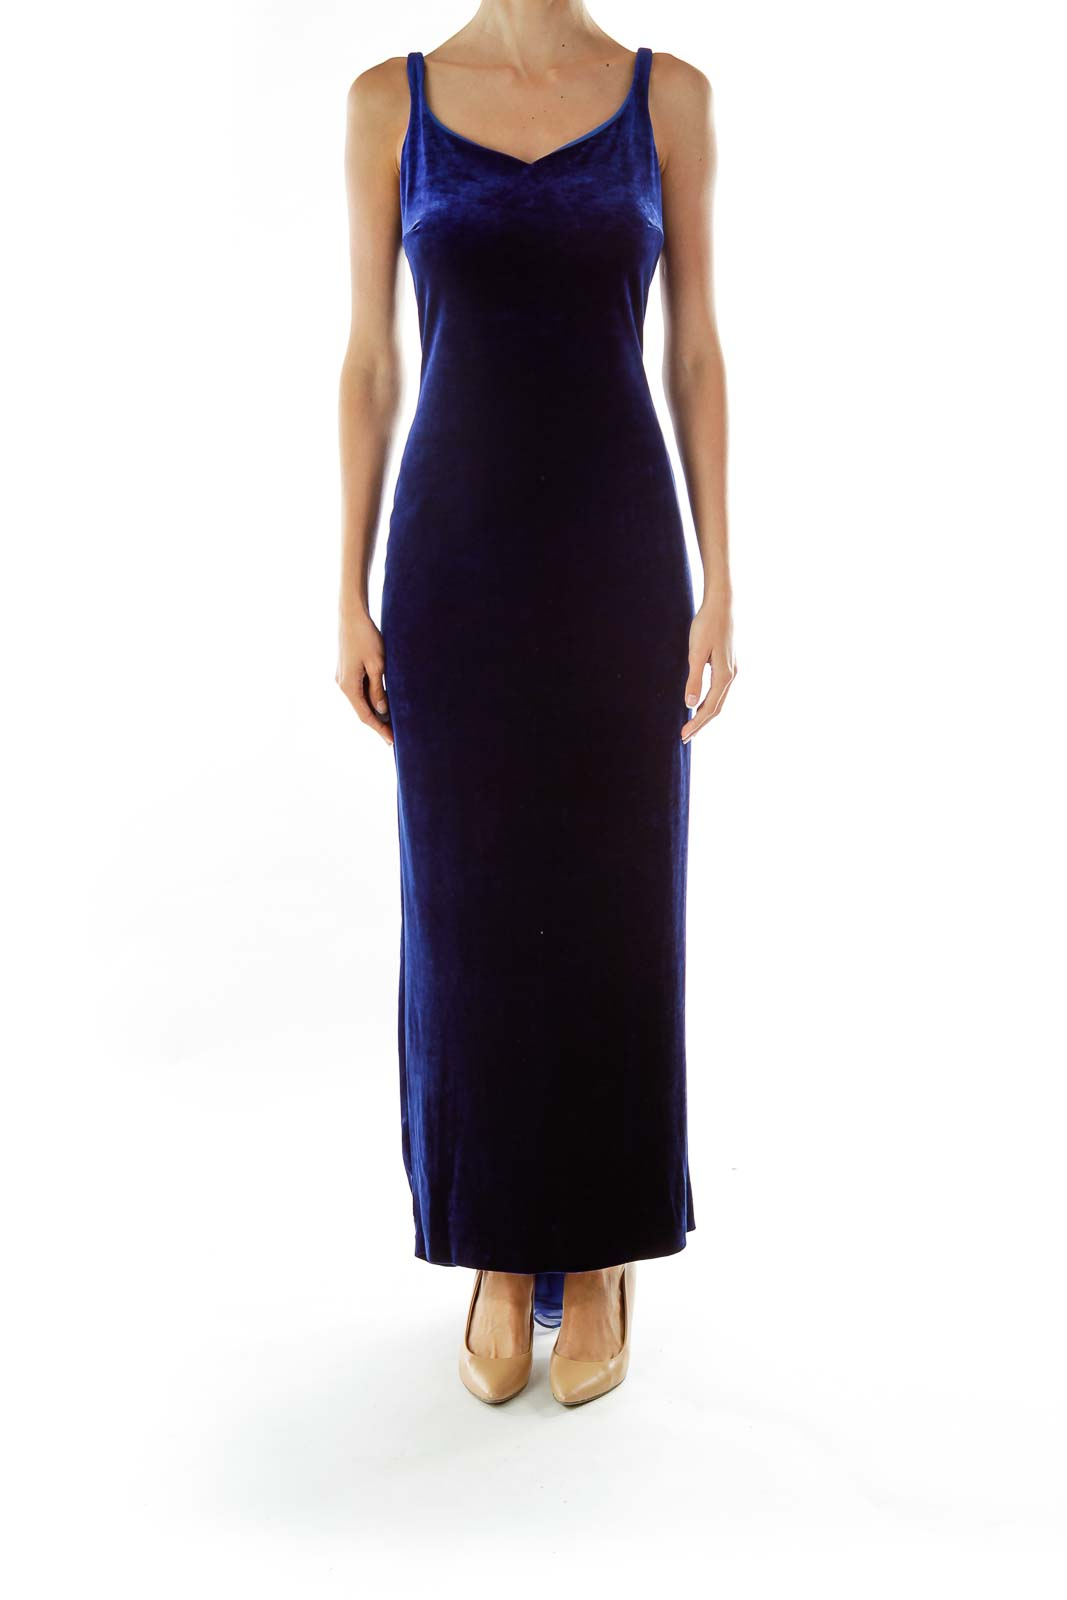 Blue Velvet Sleeveless Maxi Evening Dress